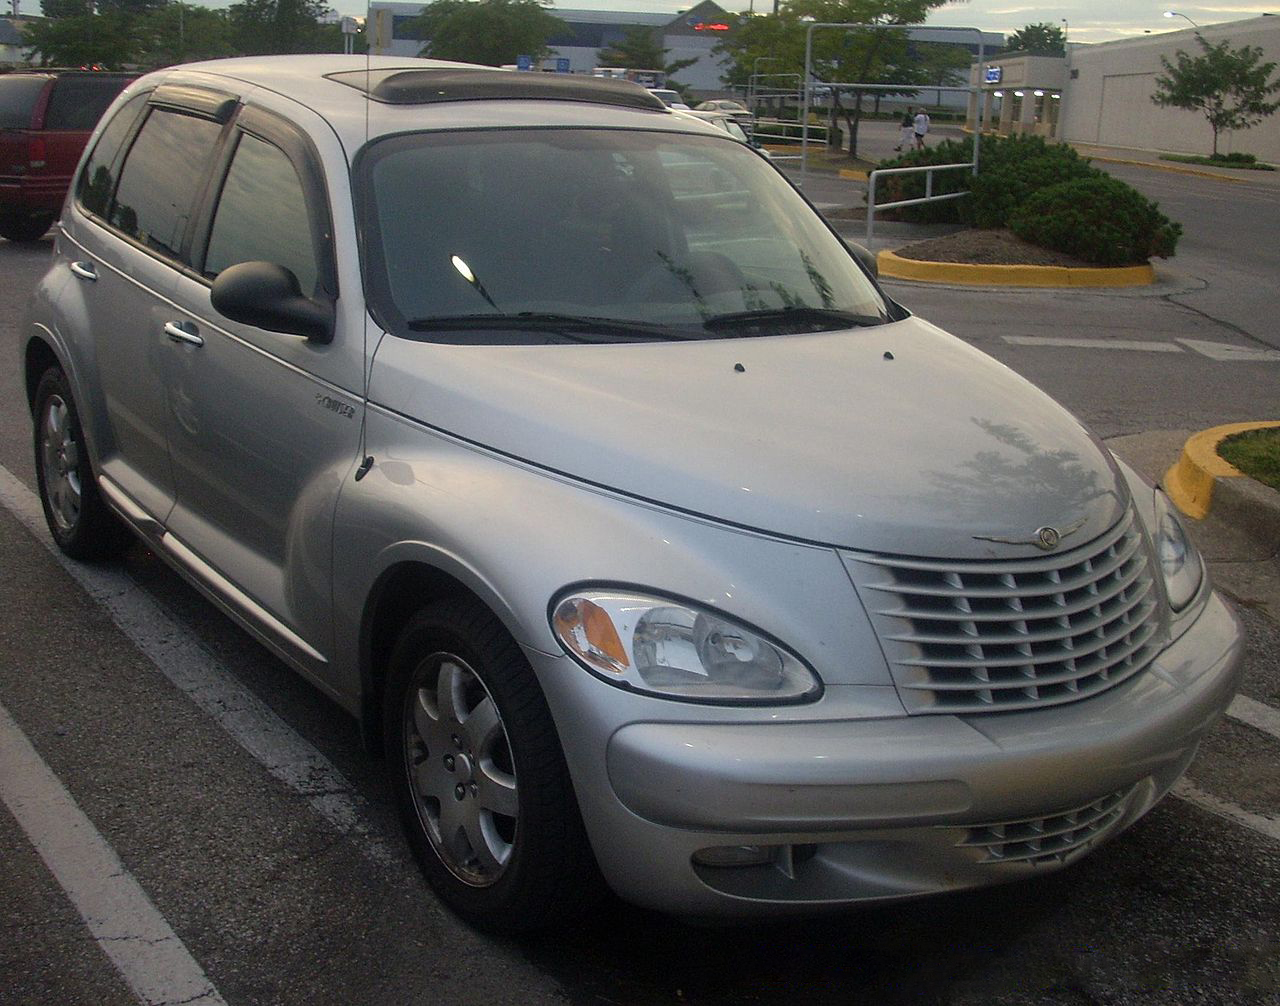 file 39 01 39 05 chrysler pt cruiser wagon jpg wikimedia commons. Black Bedroom Furniture Sets. Home Design Ideas